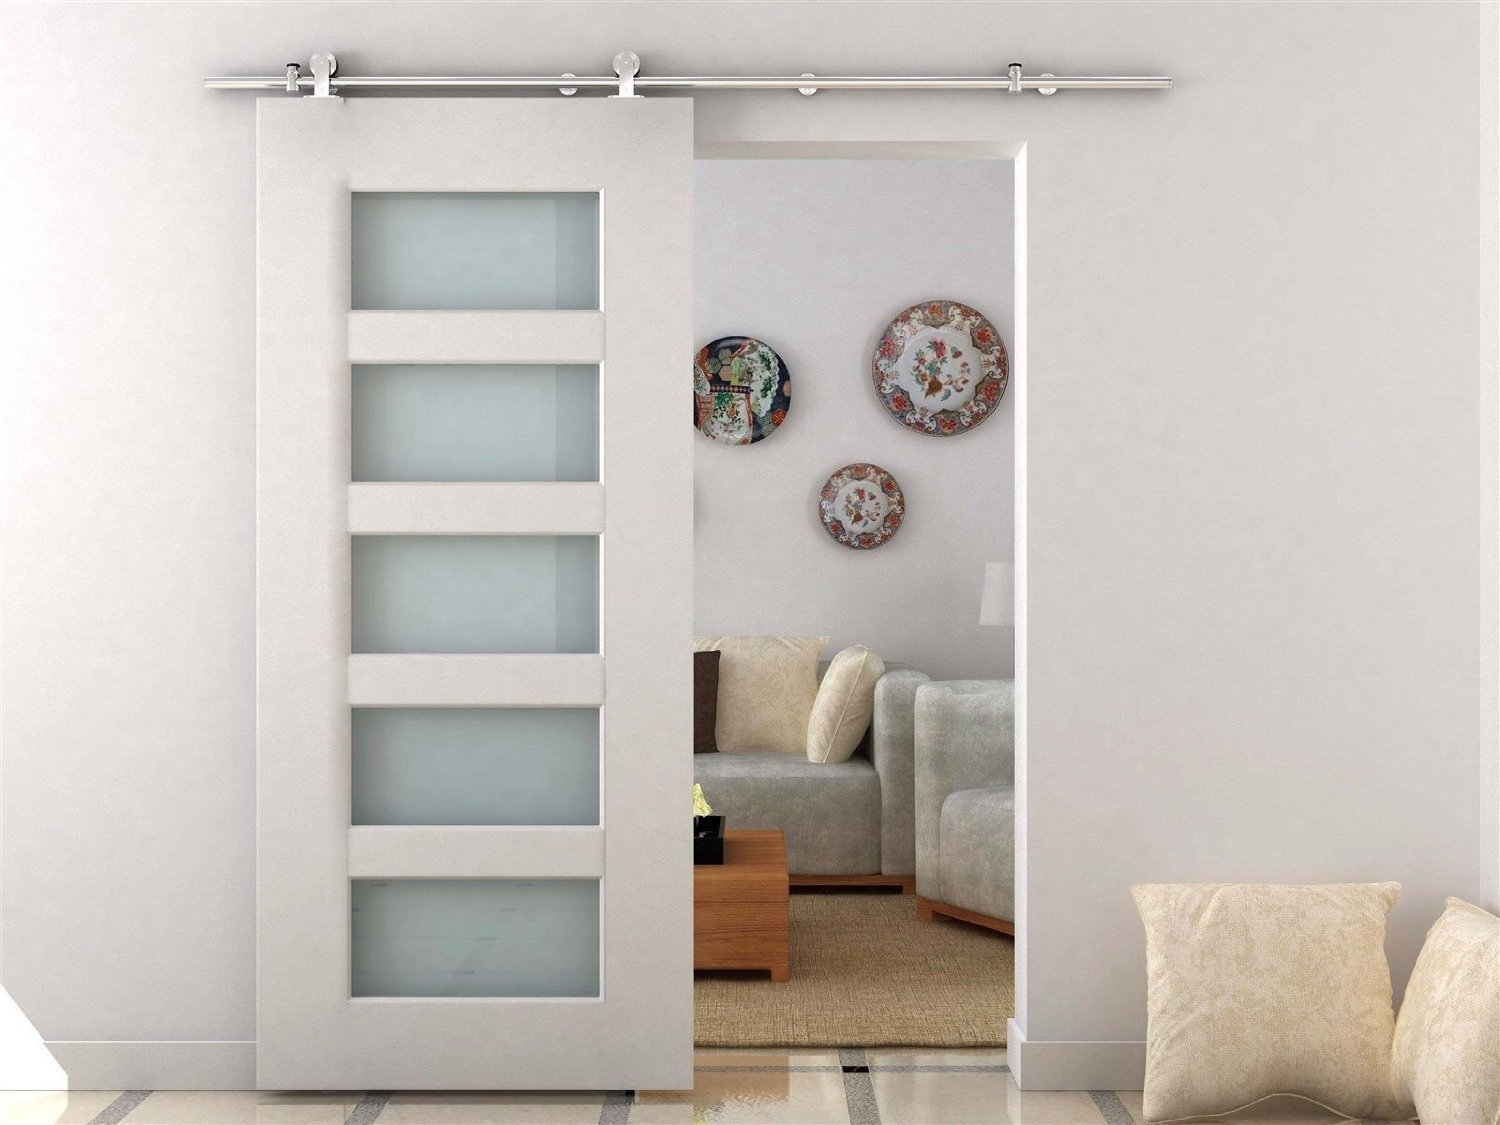 Sliding barn doors yea or nea i say yea - Montar puertas correderas armario ...